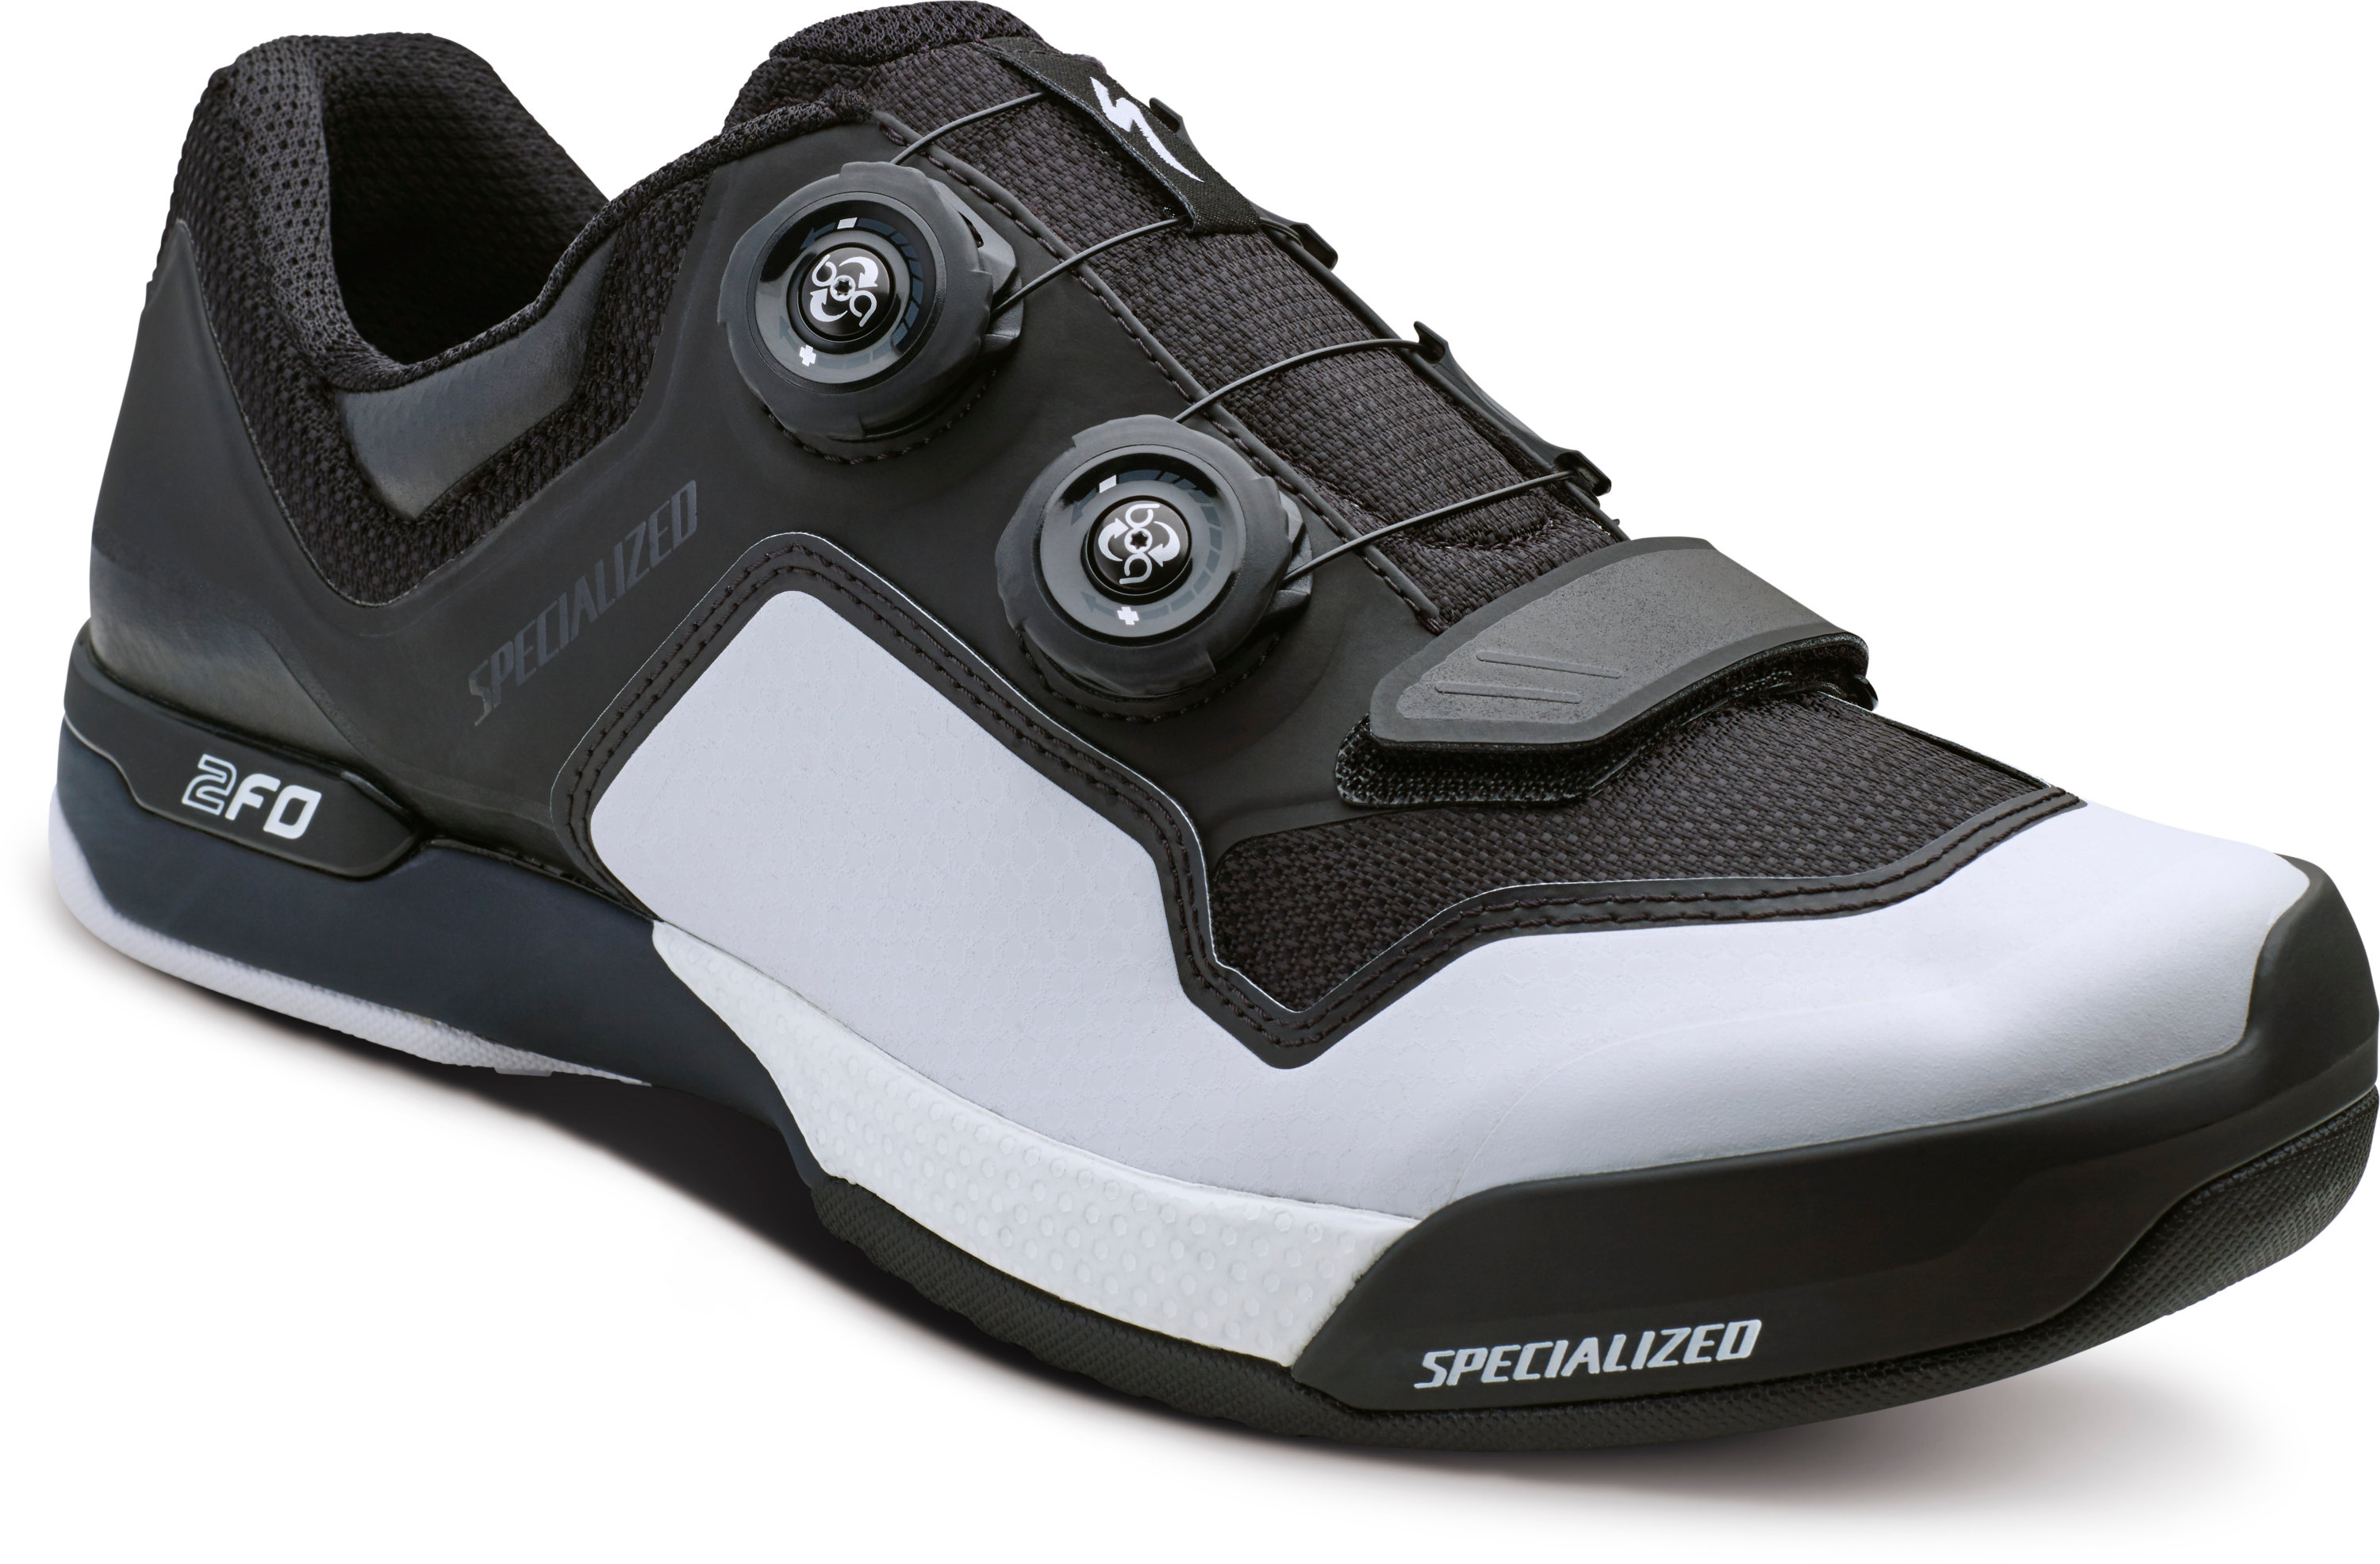 SPECIALIZED 2FO CLIPLITE MTB SHOE BLK/WHT 39/6.5 - Bikedreams & Dustbikes